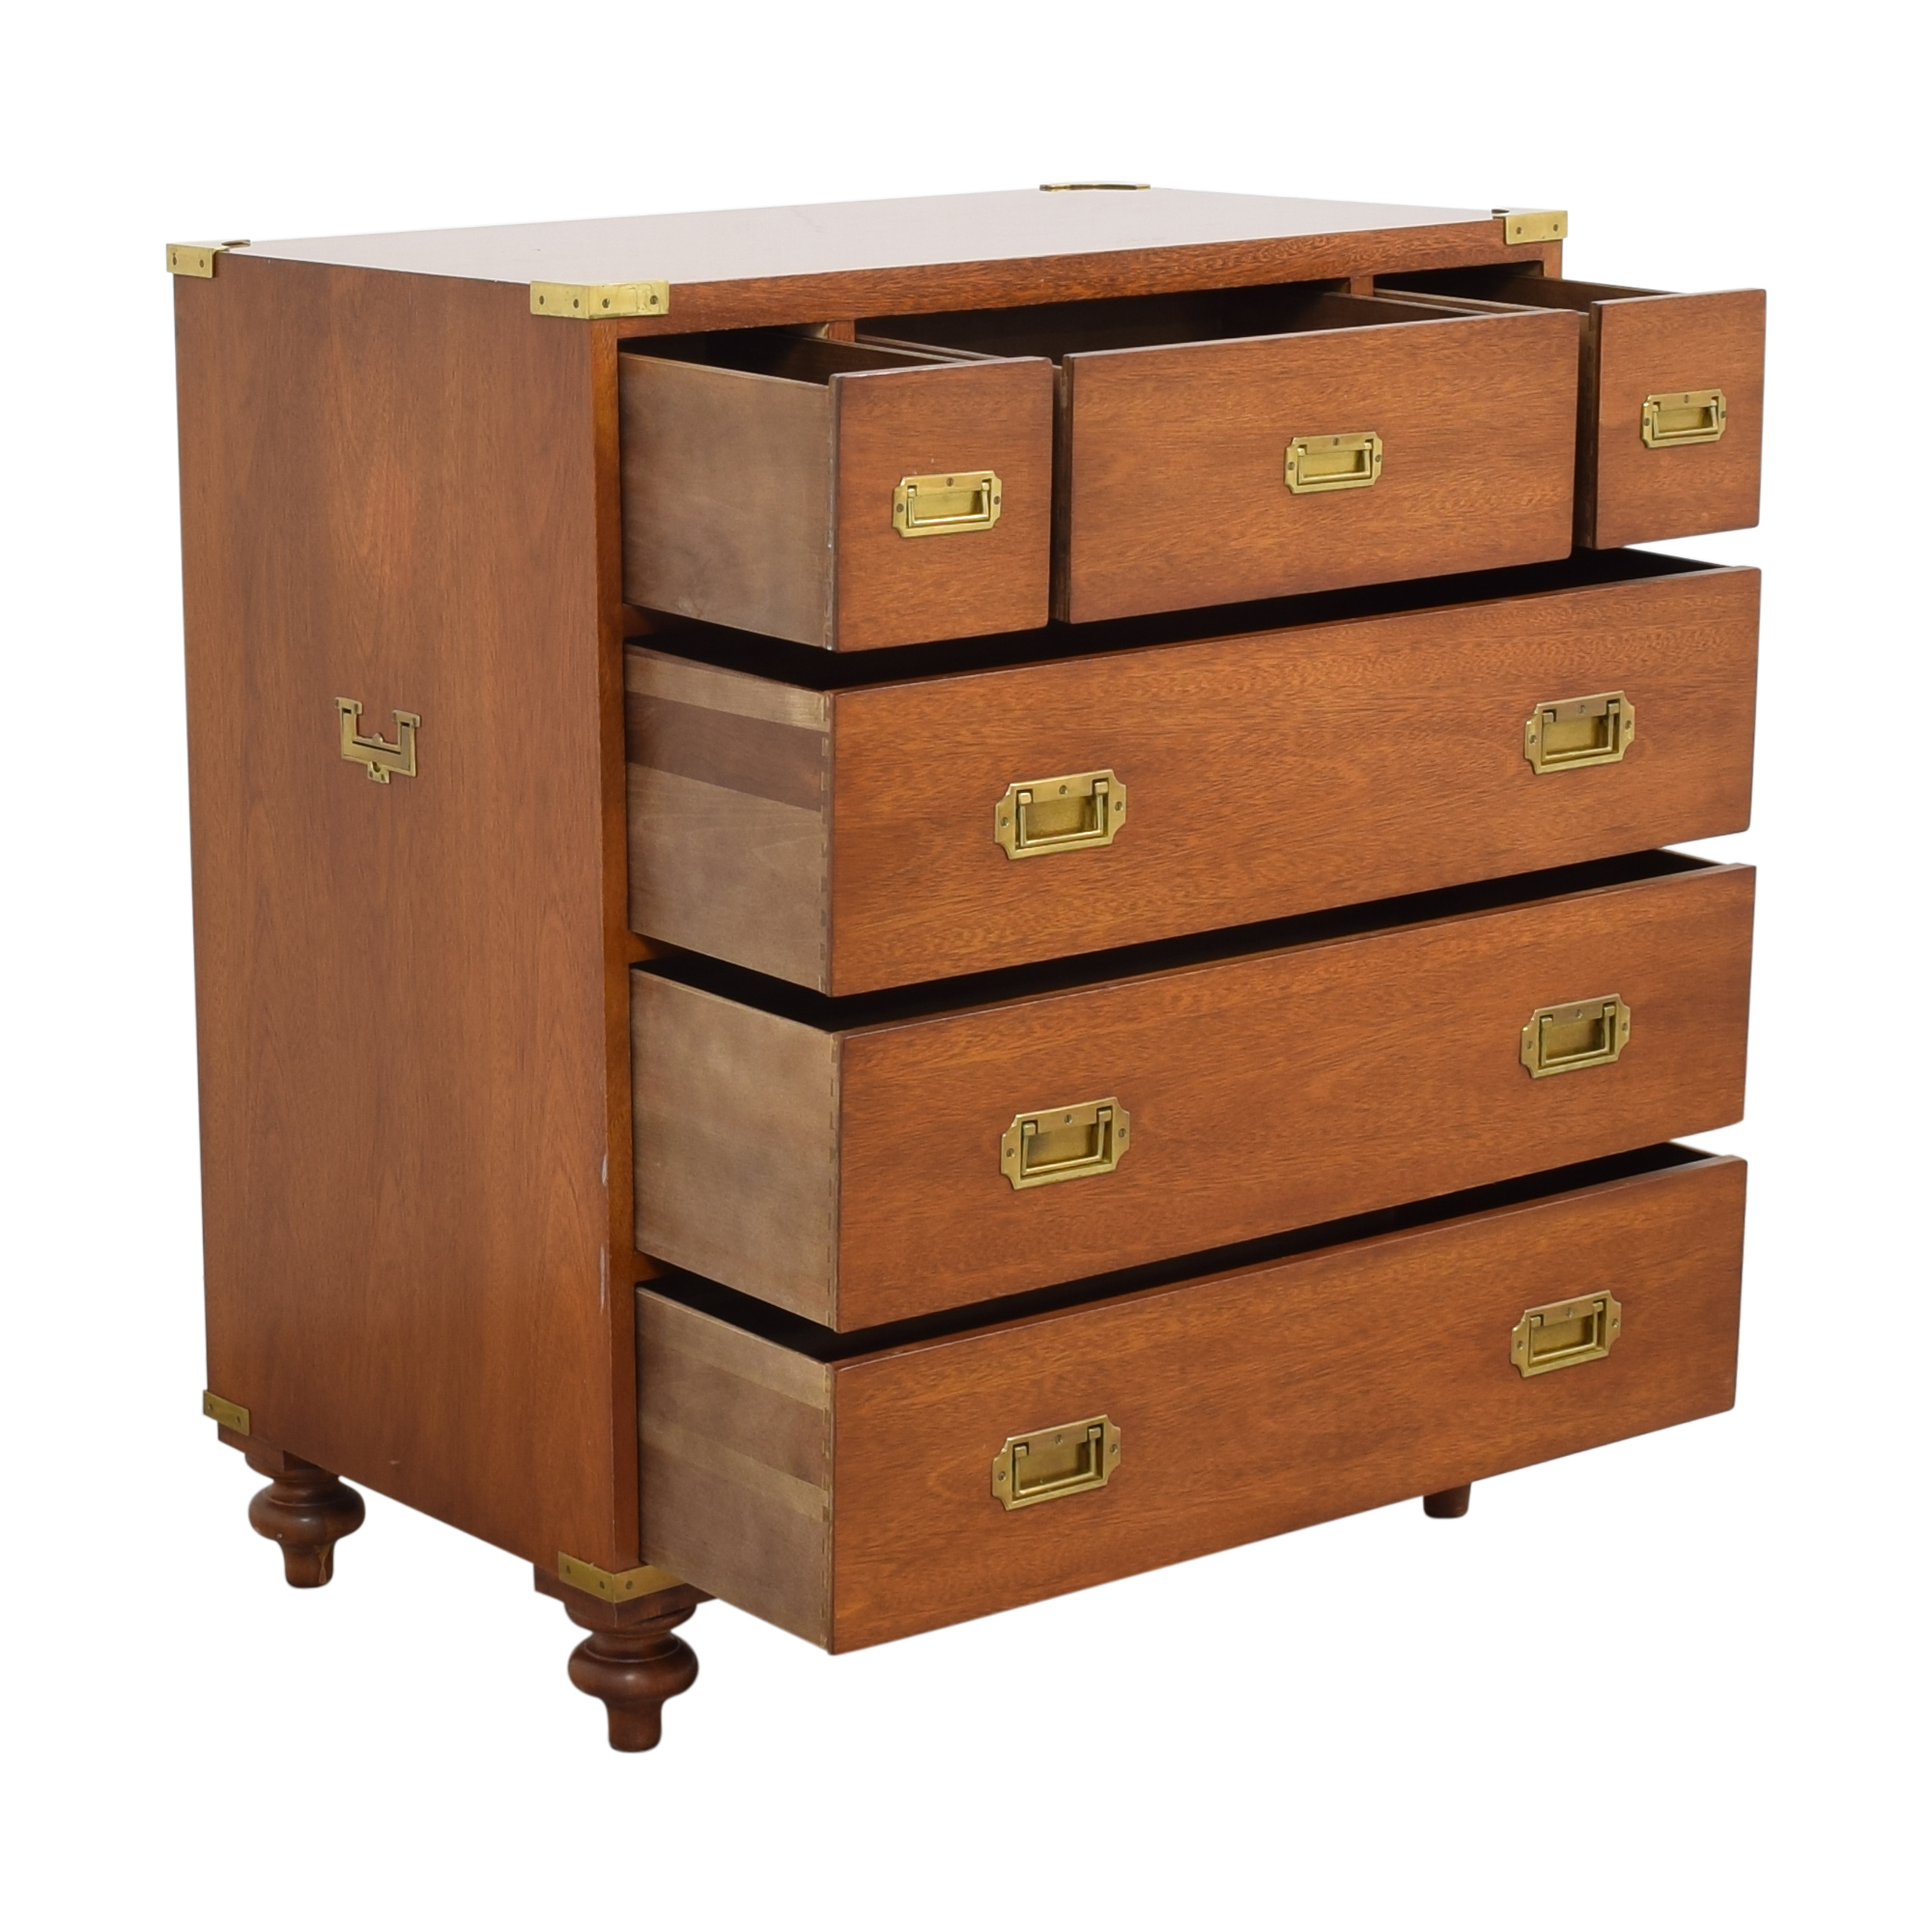 Ralph Lauren Home Ralph Lauren Home Campaign Chest on sale